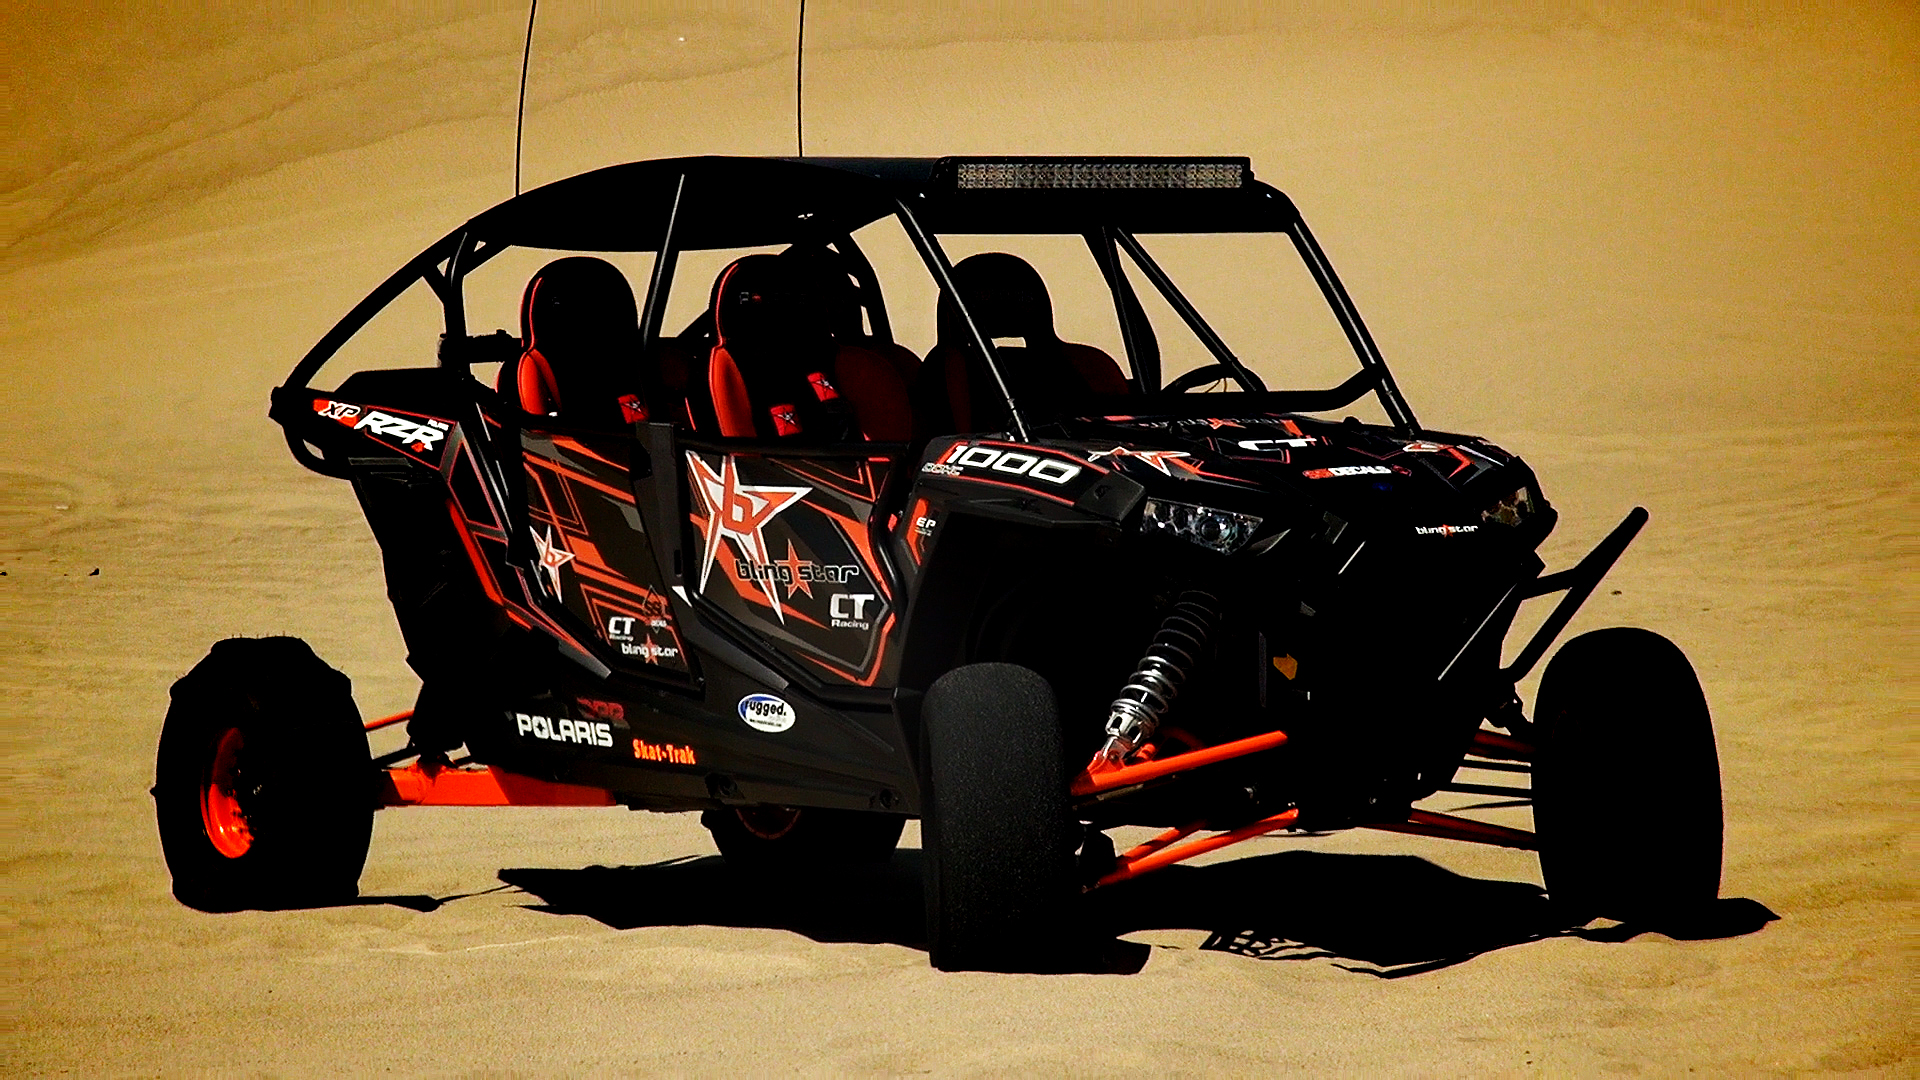 blingstar s polaris rzr xp 4 1000 dune runner project test with video. Black Bedroom Furniture Sets. Home Design Ideas